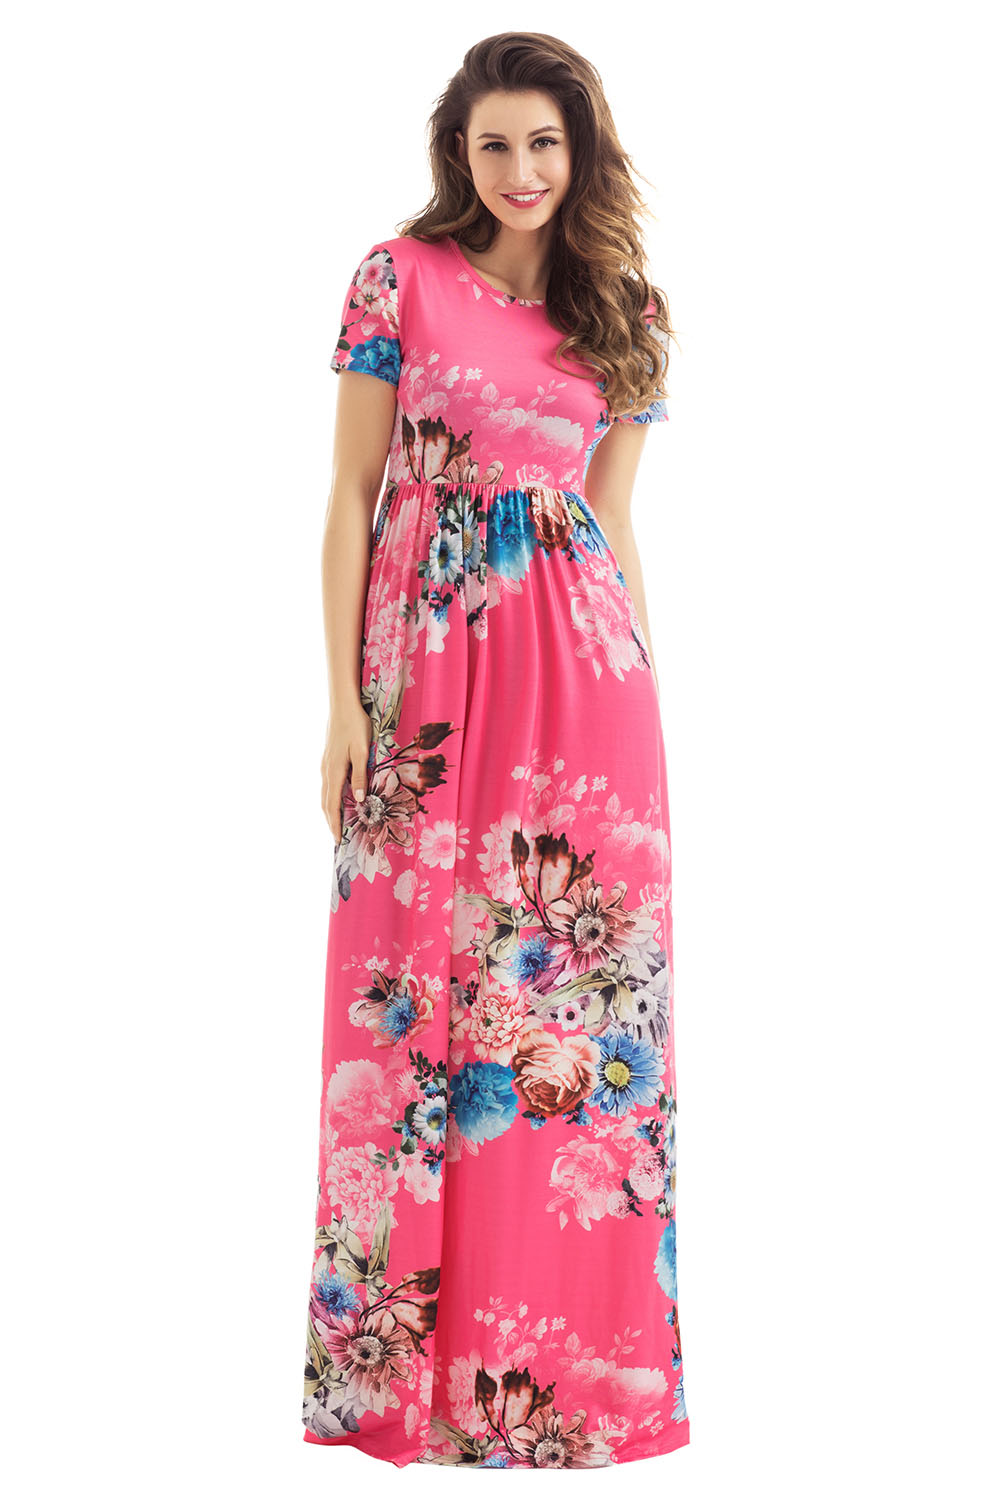 Pocket design short sleeve watermelon red floral maxi dress maxi